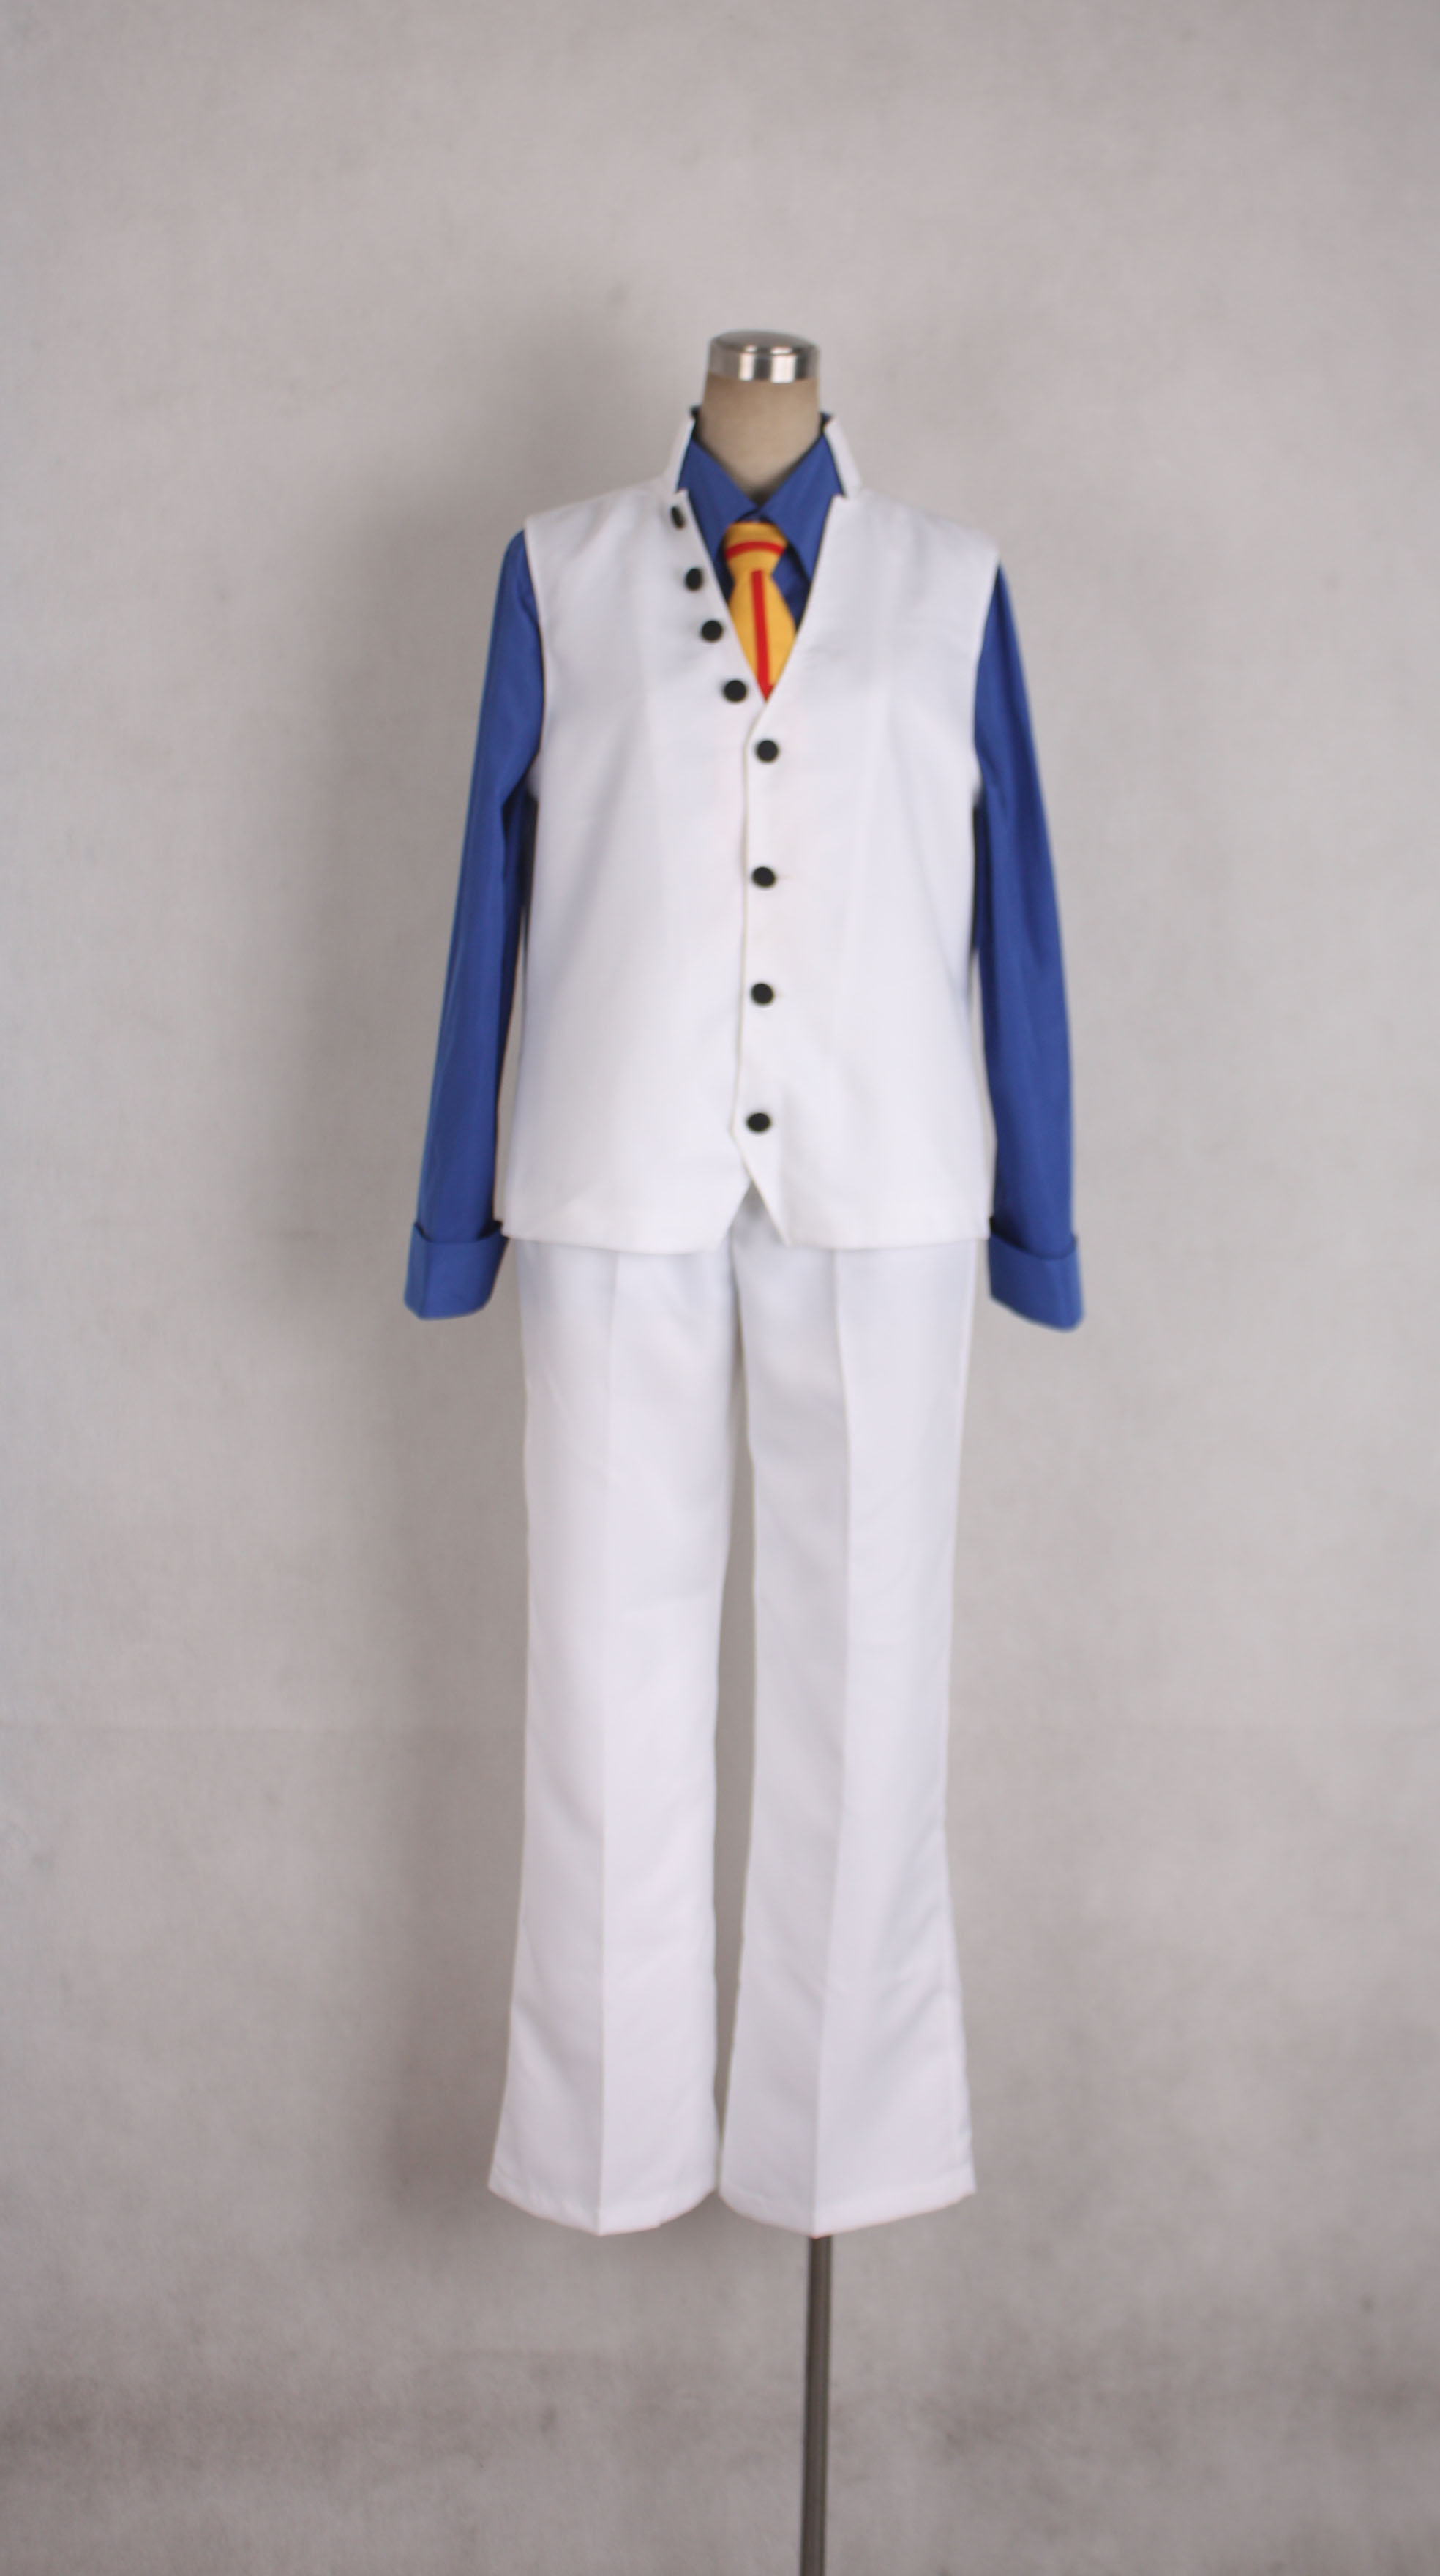 One Piece Aokiji Kuzan Navy Admiral Uniform Cosplay